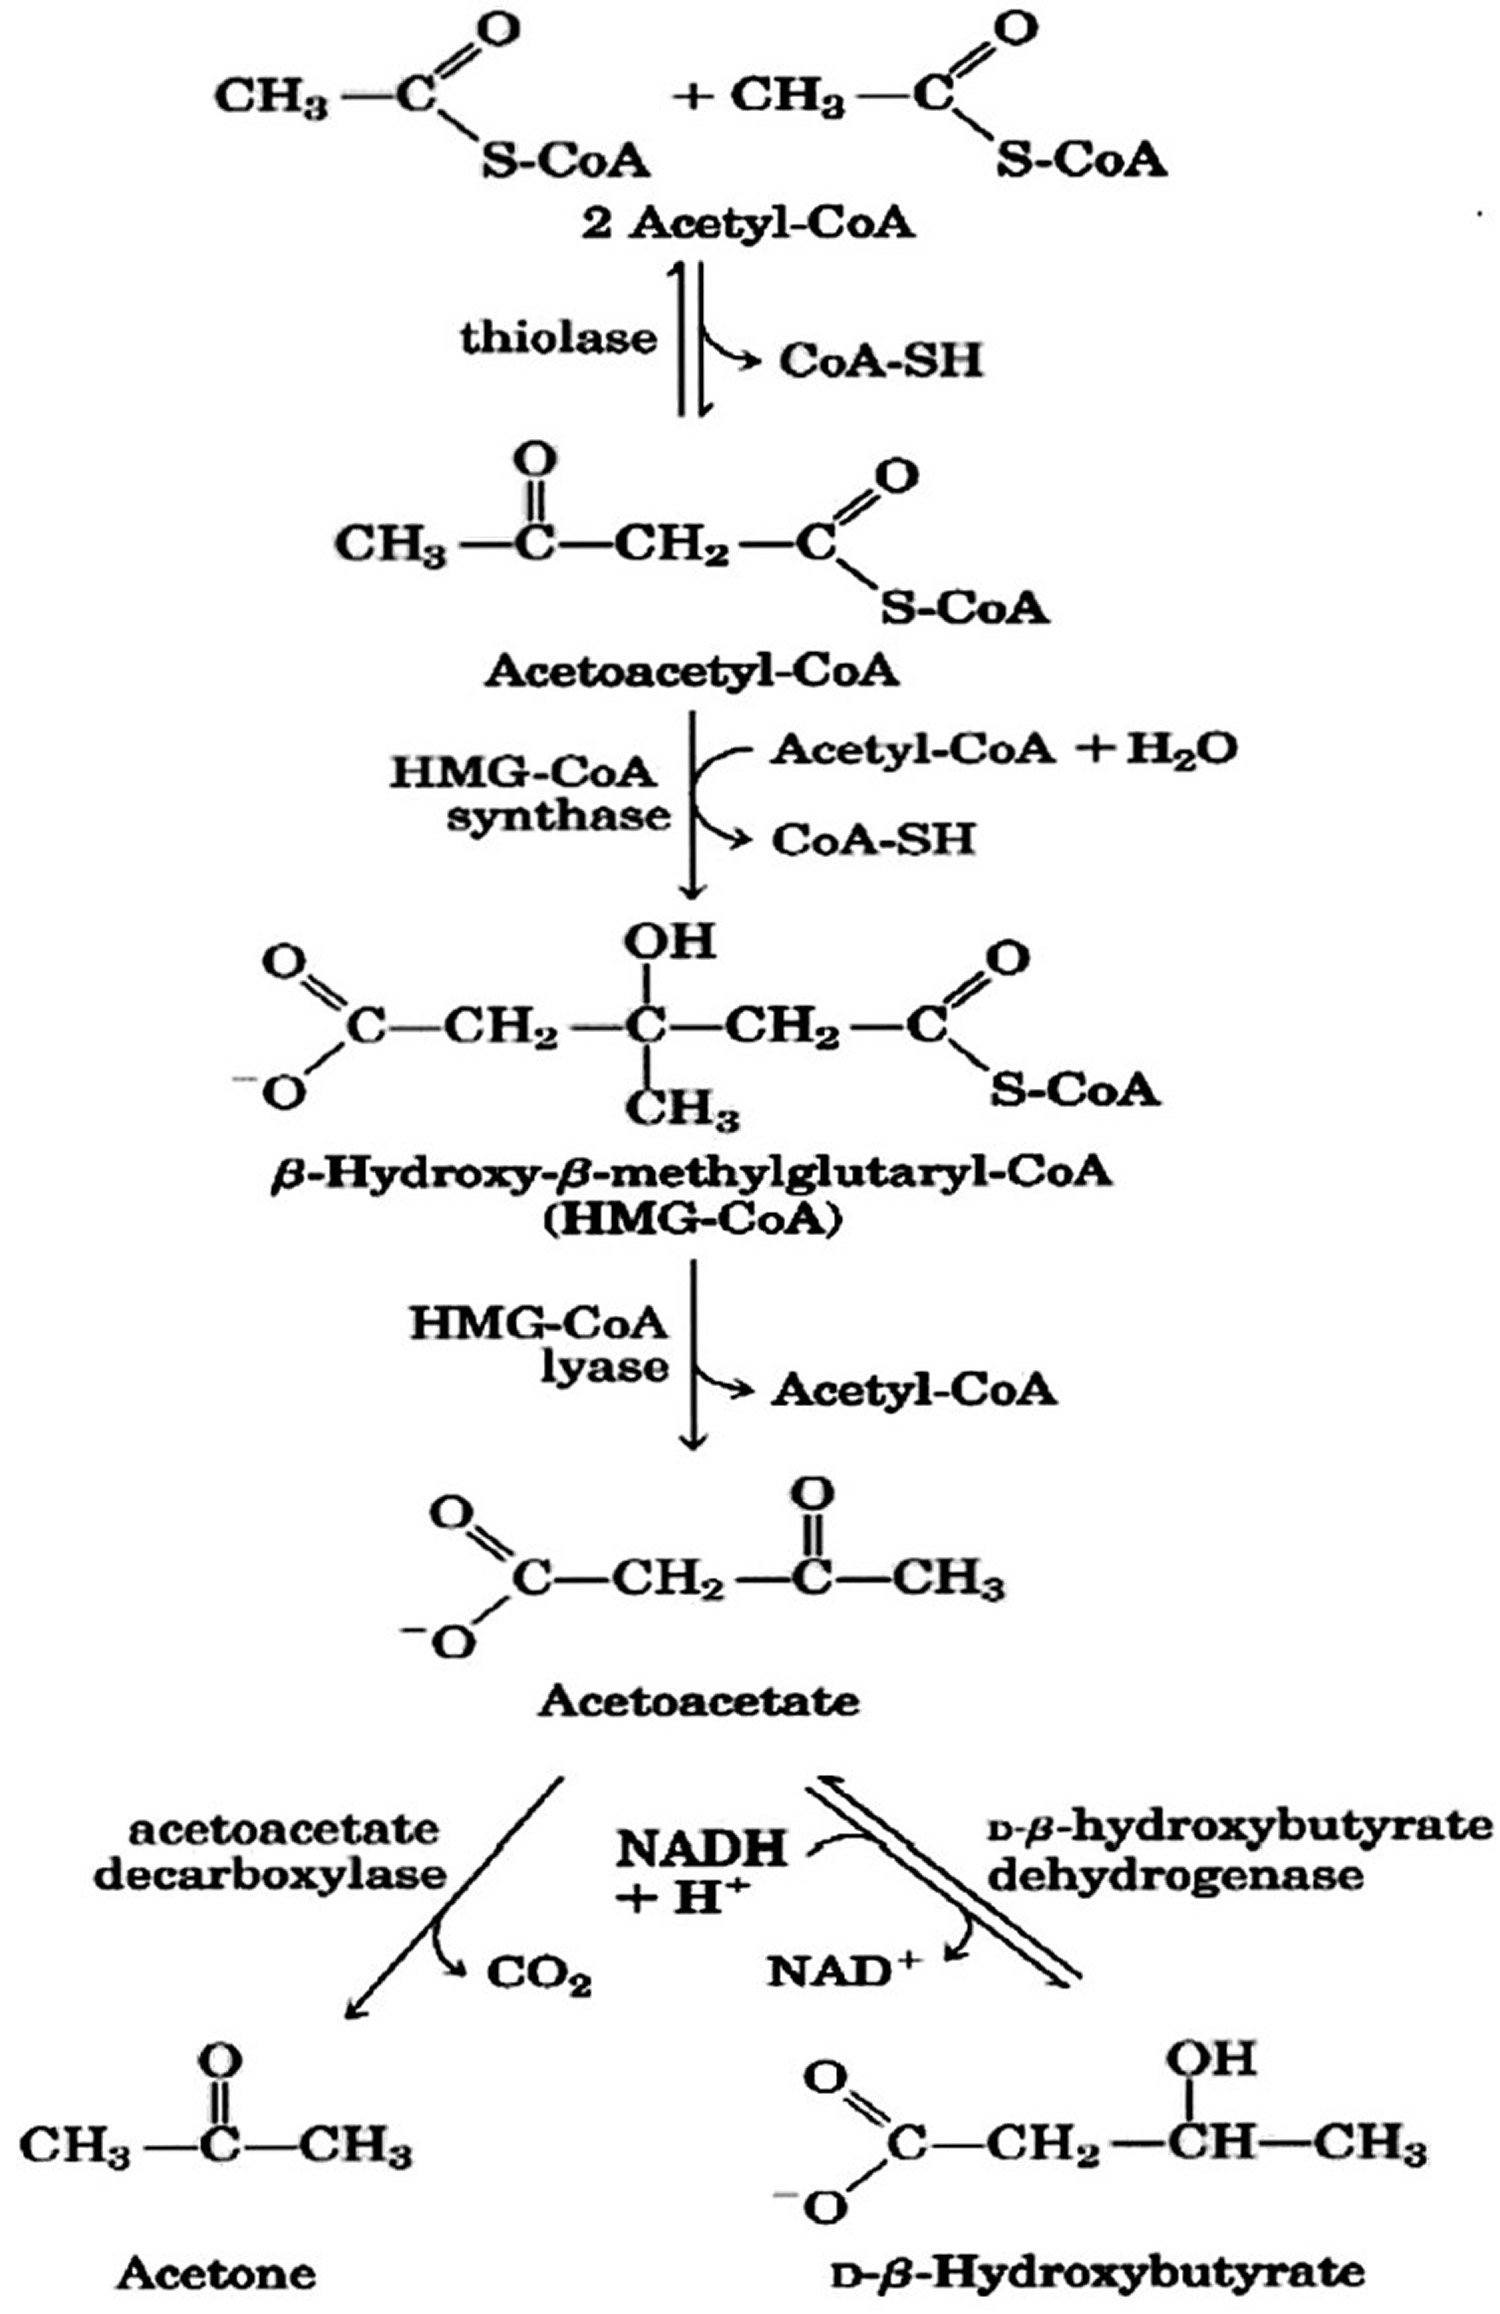 ketone bodies formation